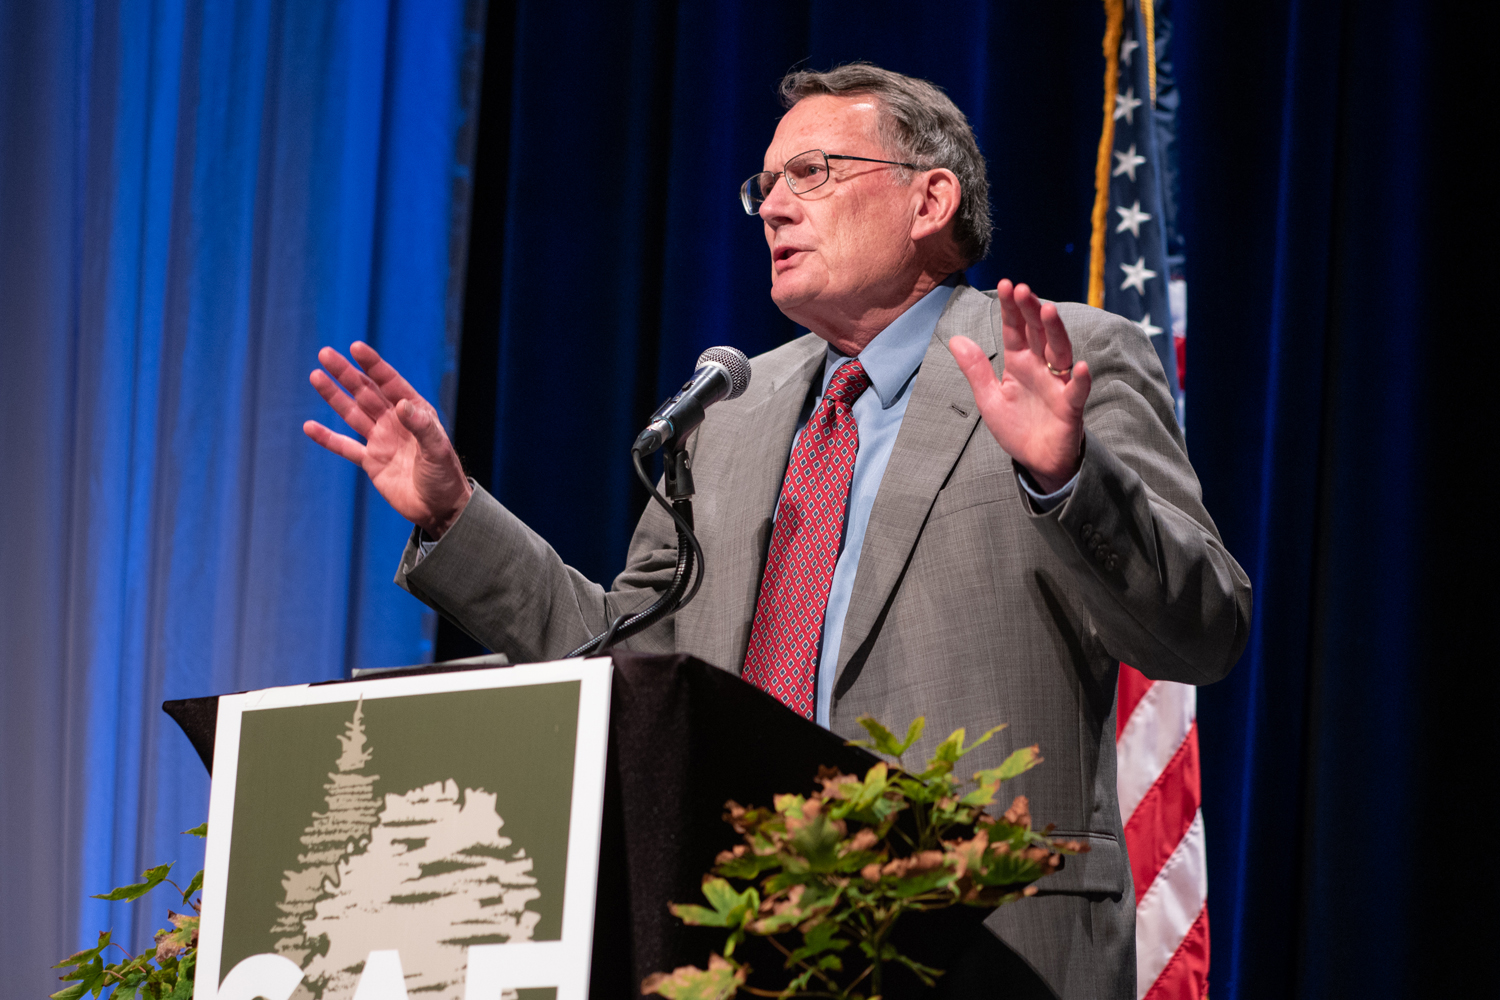 Wasim Muklashy Photography_-SAM_5452_Society of American Foresters National Convention_585_World Forestry Center Leadership Hall Induction_Allyn Ford135_Society of American Foresters Convention 2018_607.jpg